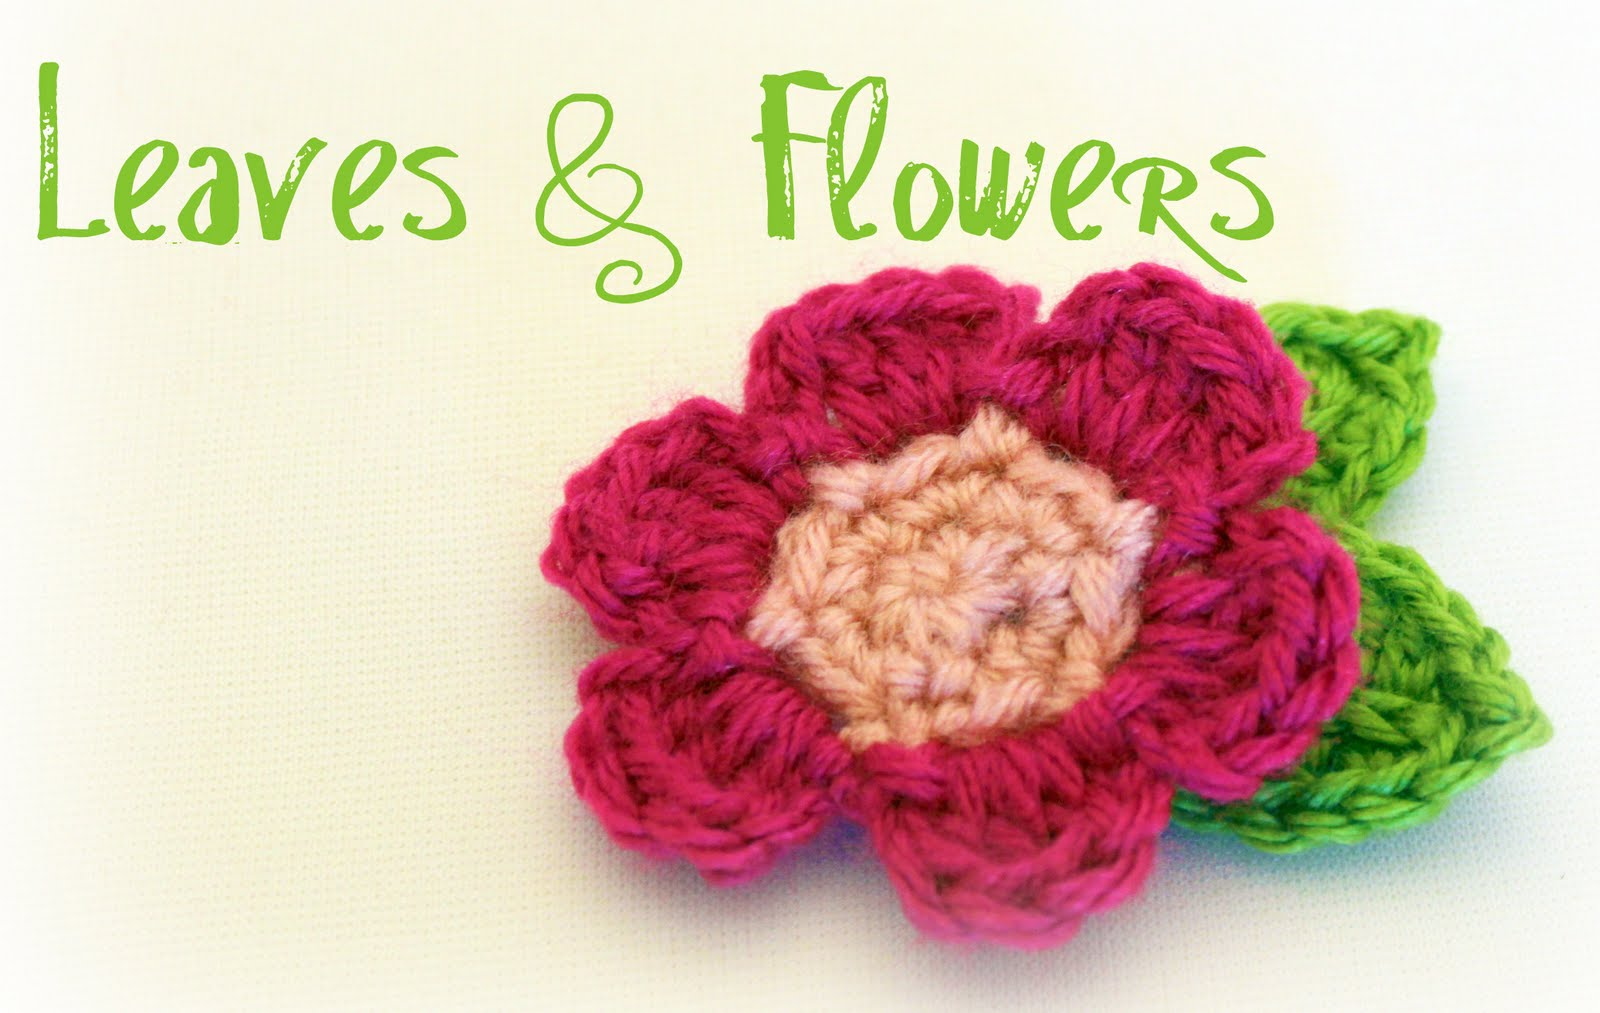 Free Crochet Flower Power Patterns: Easy-to-Make Spring and Summer